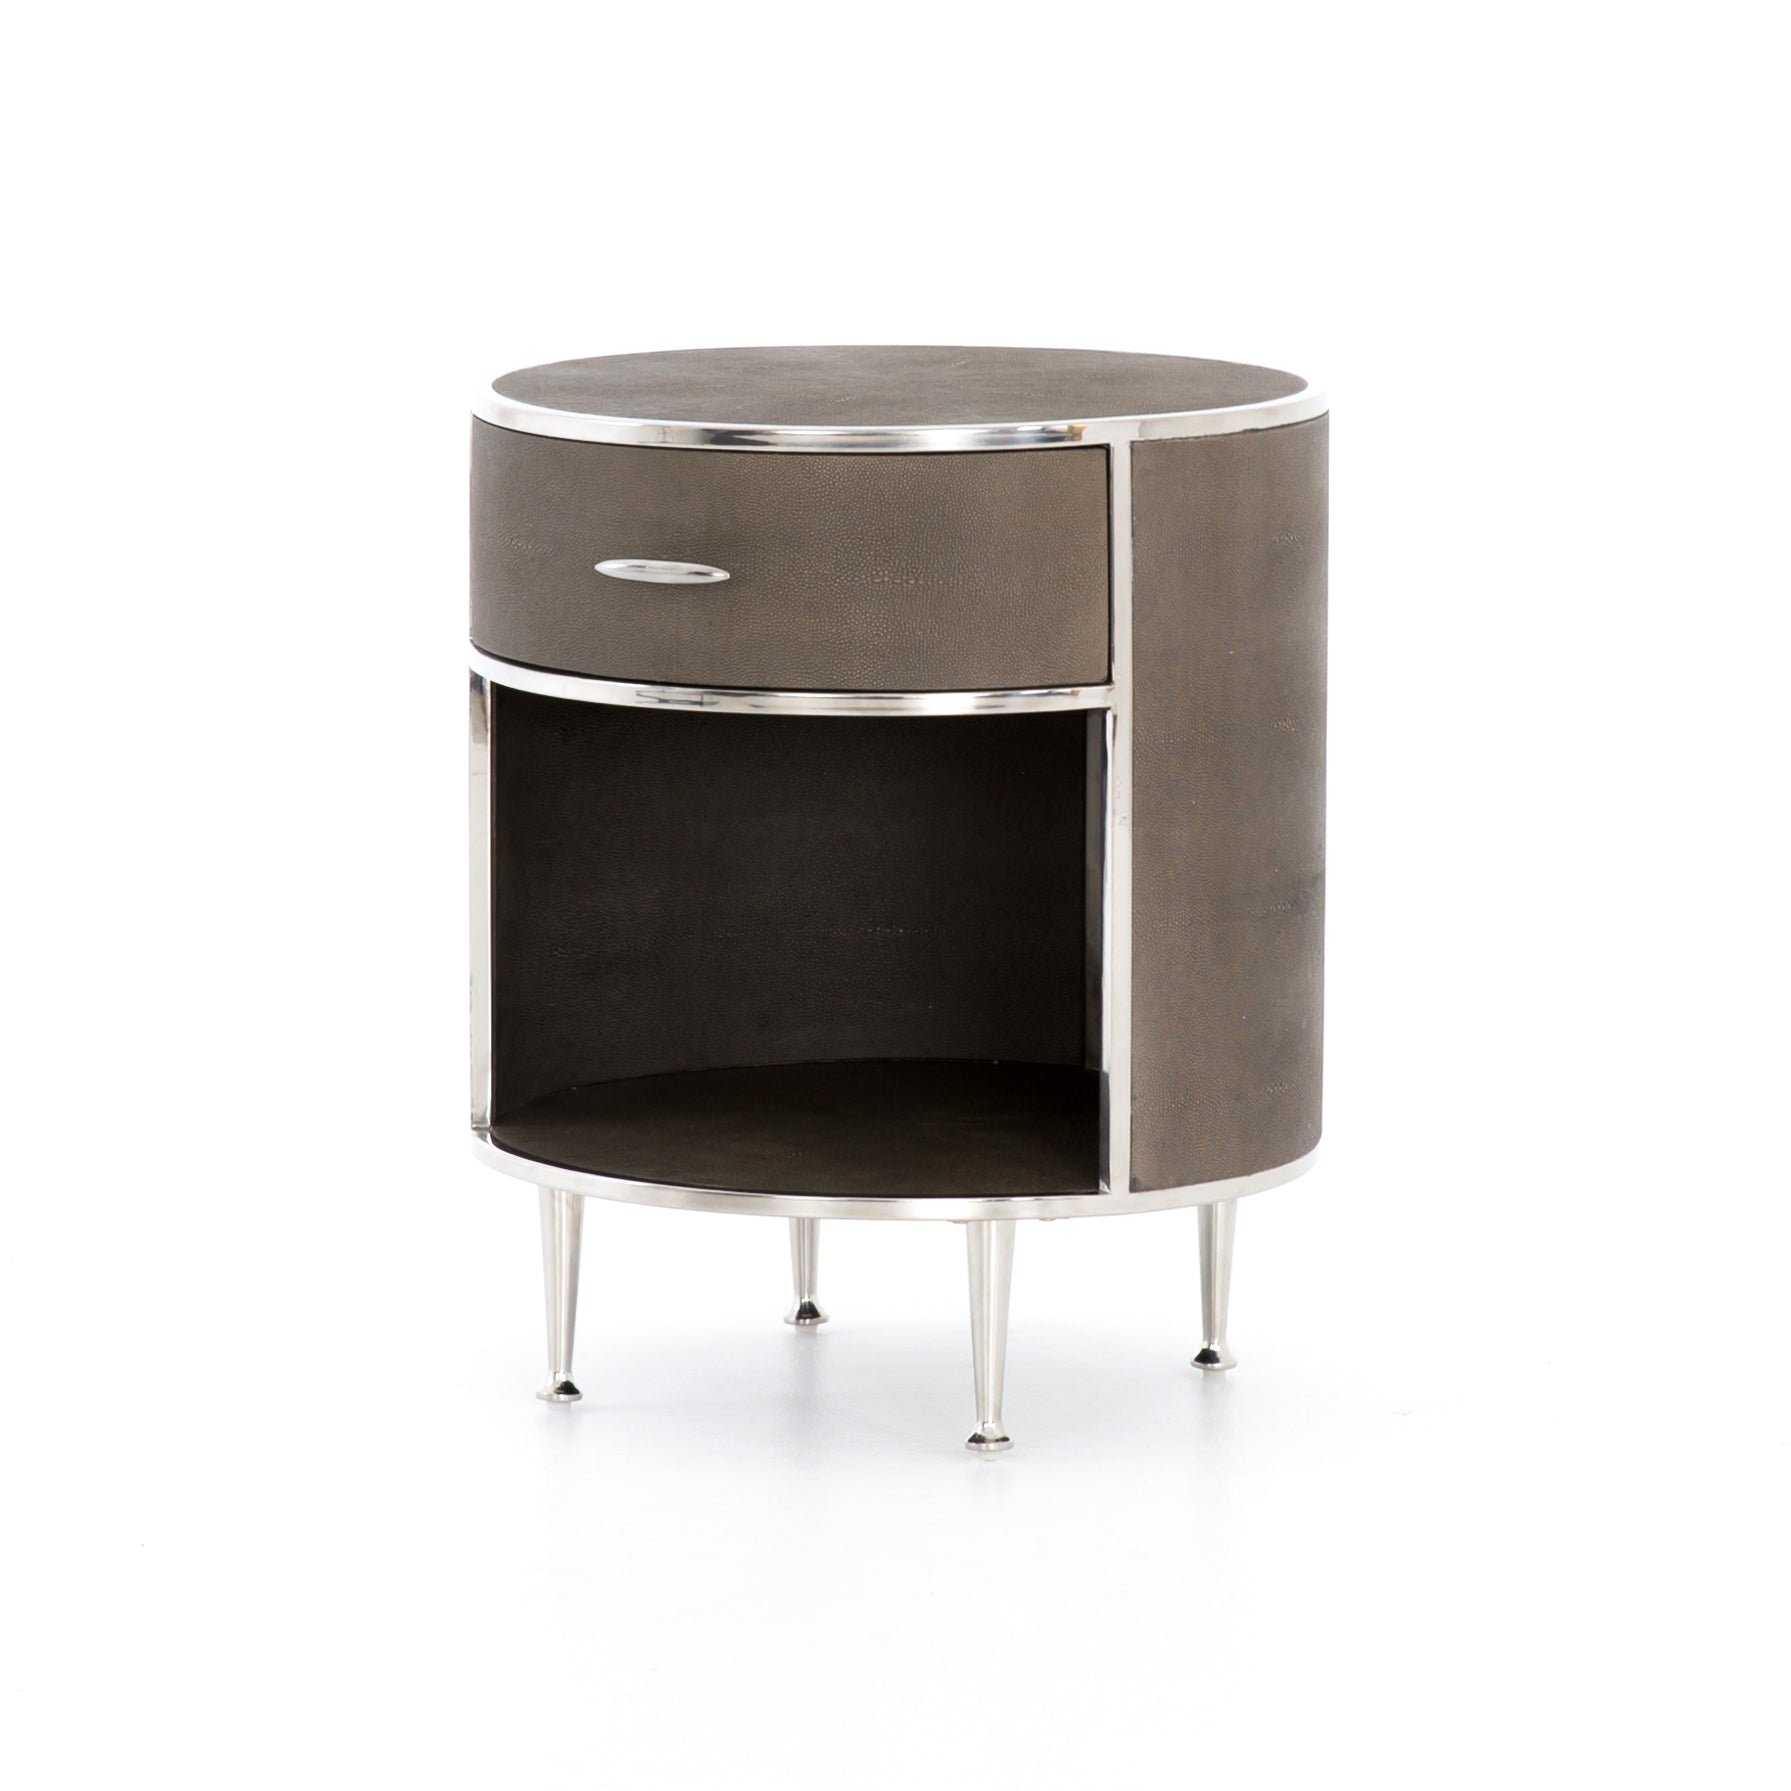 blossom-round-nightstand-stainless-steel